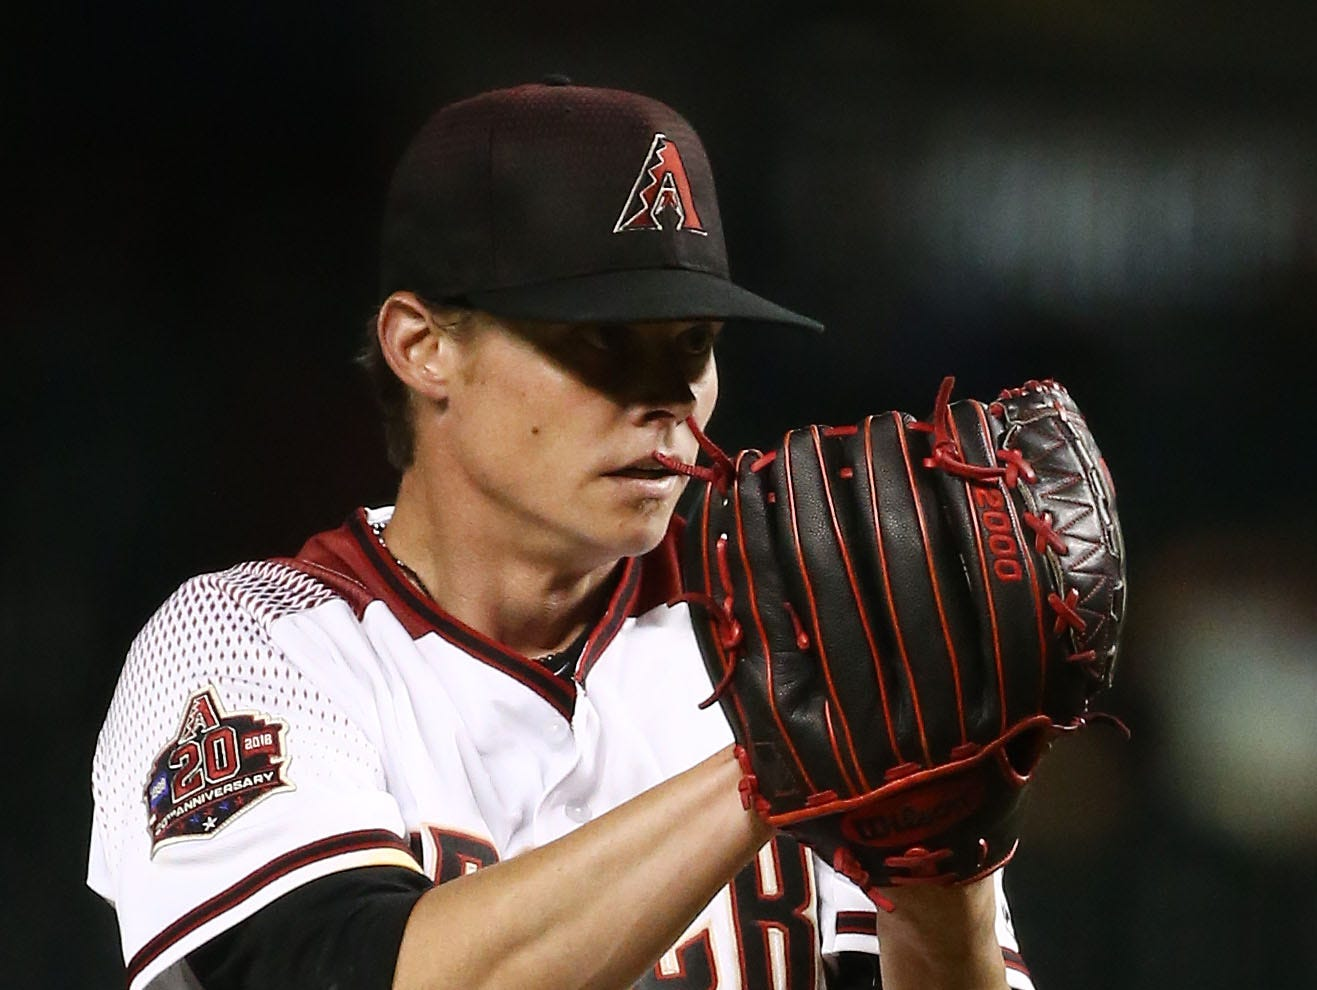 Arizona Diamondbacks pitcher Clay Buchholz throws to the Los Angeles Angels in the first inning on Aug. 22, 2018, at Chase Field in Phoenix, Ariz.